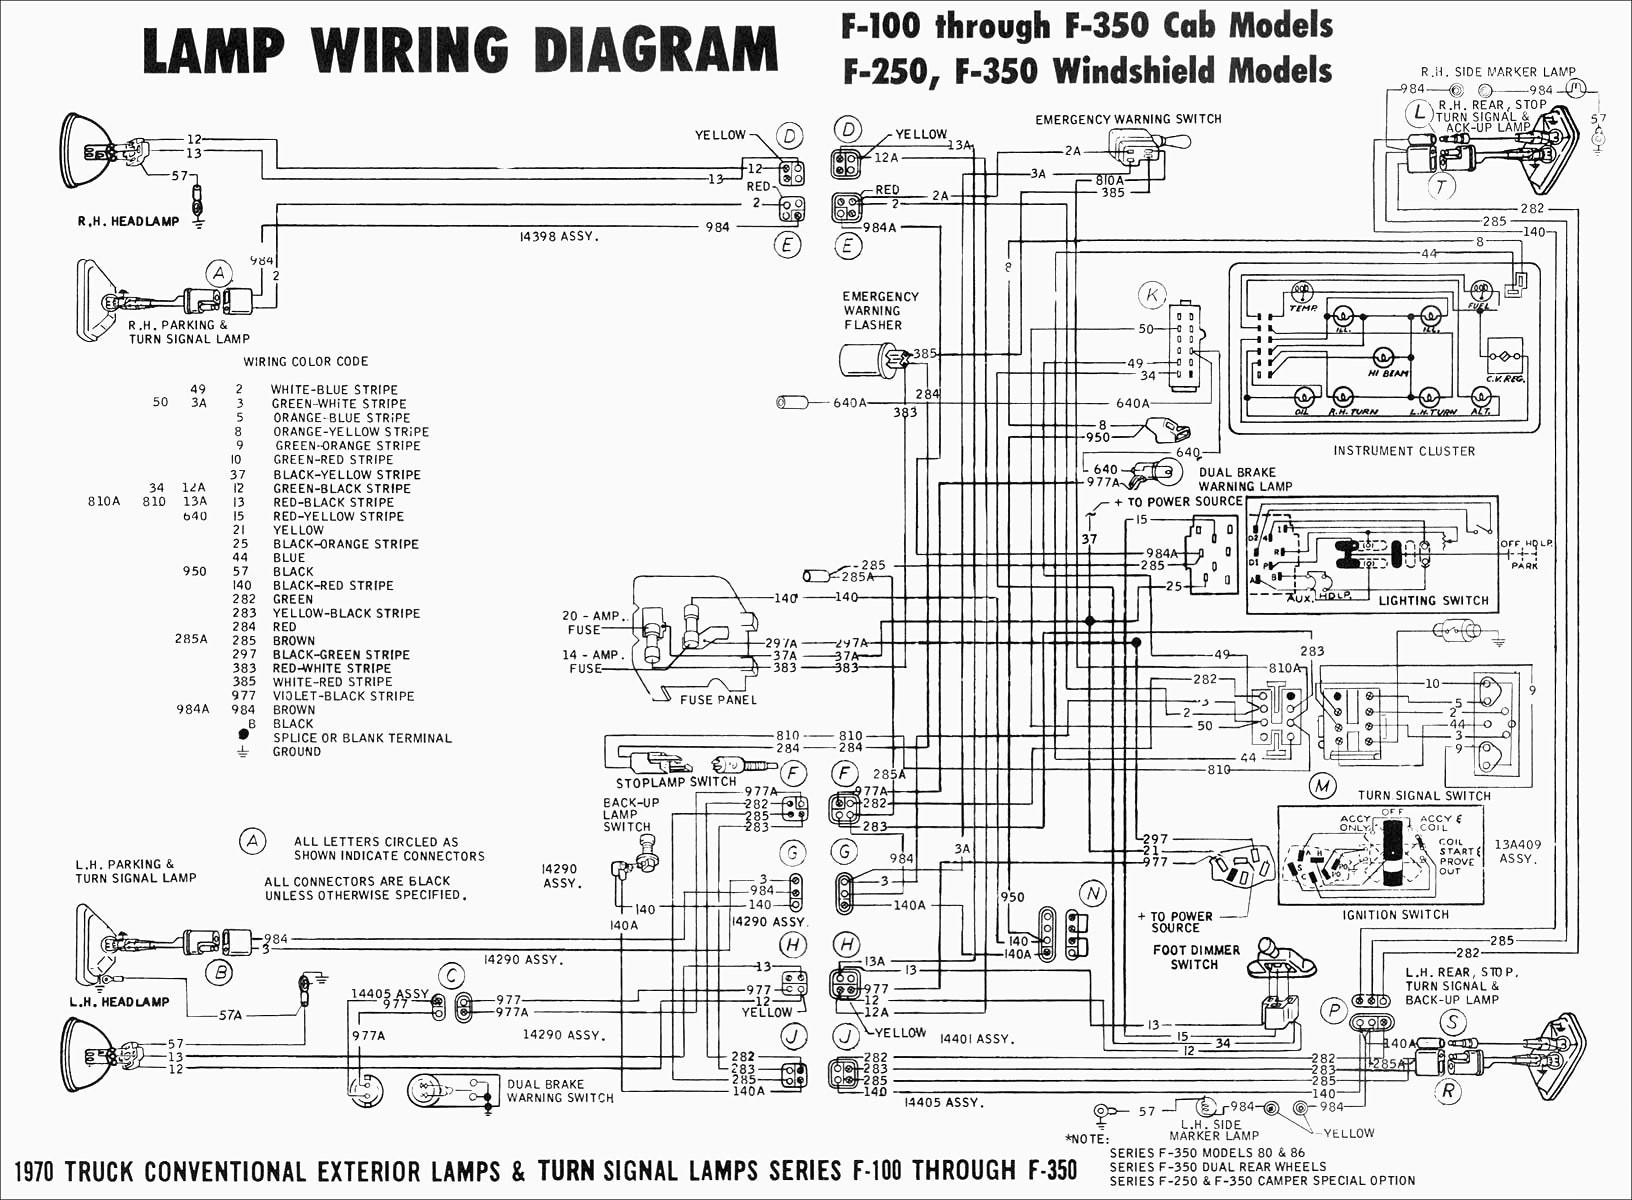 mtd ignition switch wiring diagram mtd electric pto 18 horse ignition switch wiring diagram